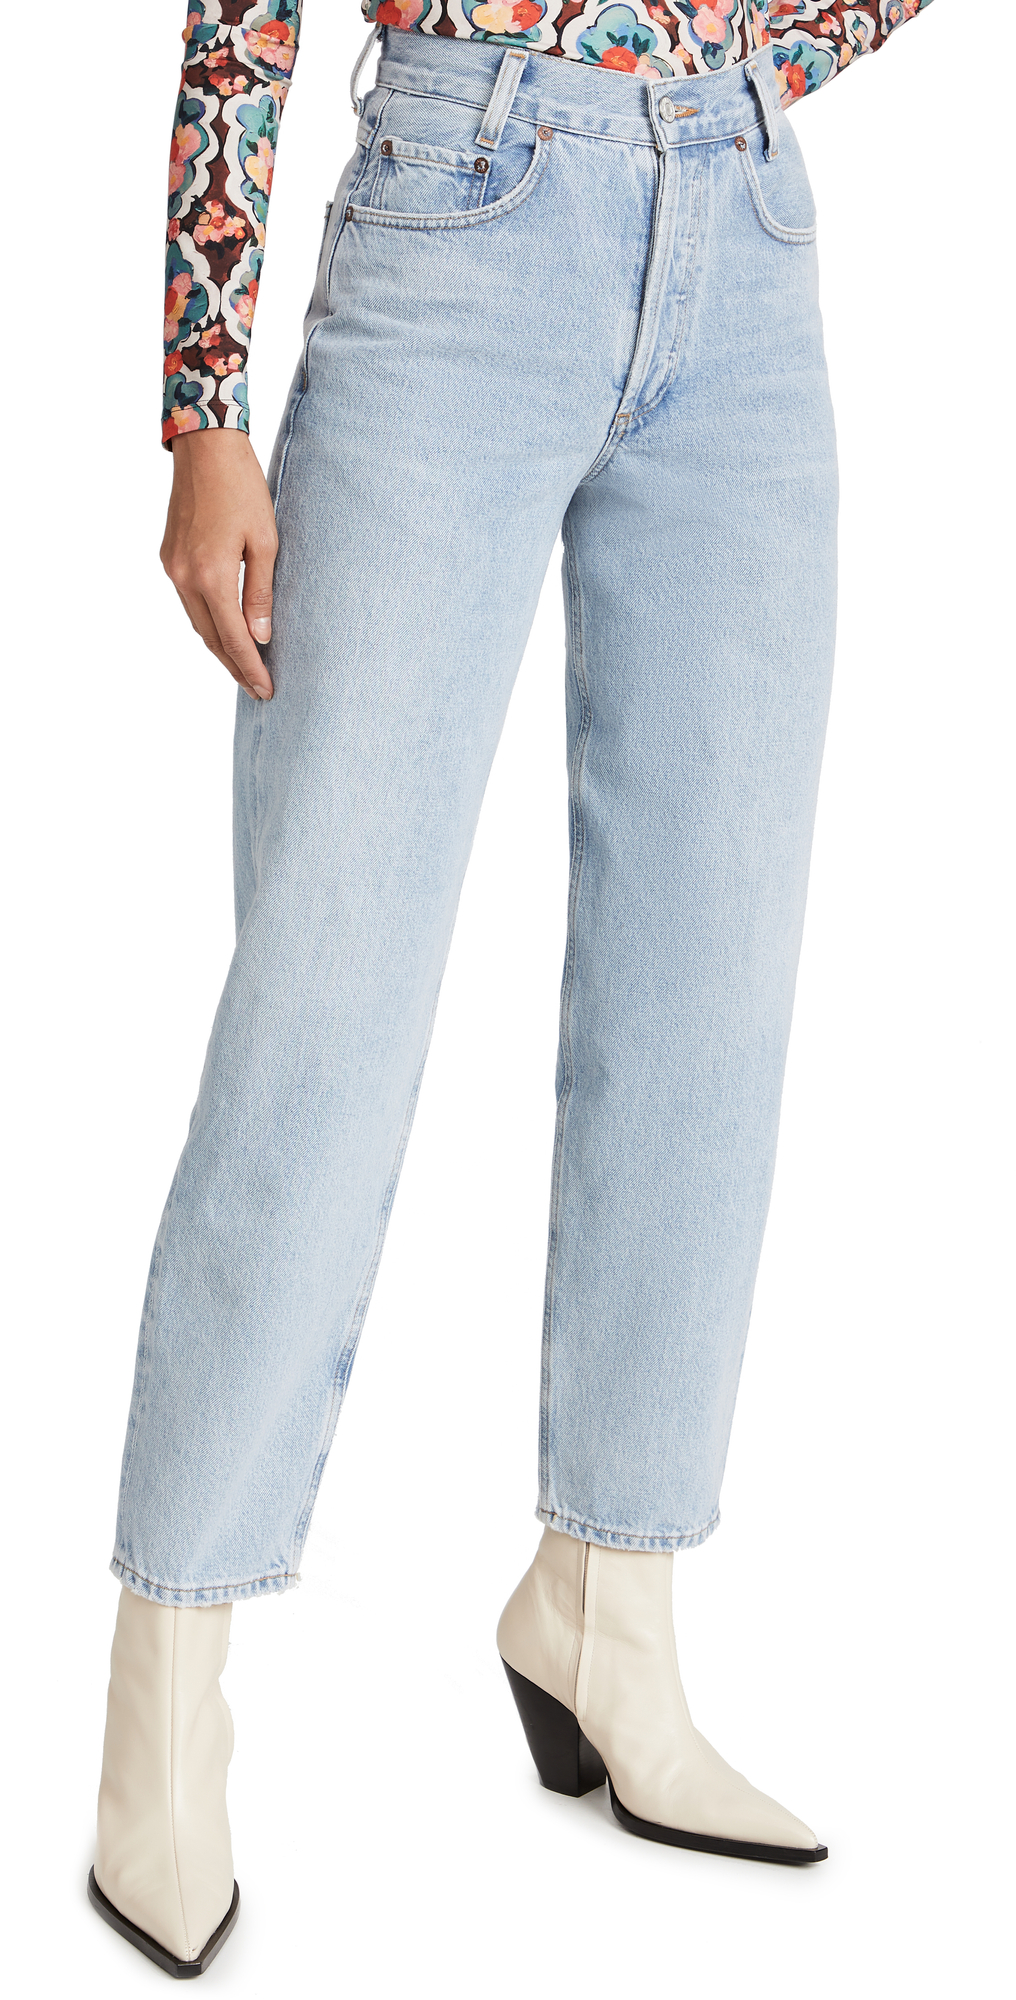 AGOLDE Tapered Baggy High Rise Jeans